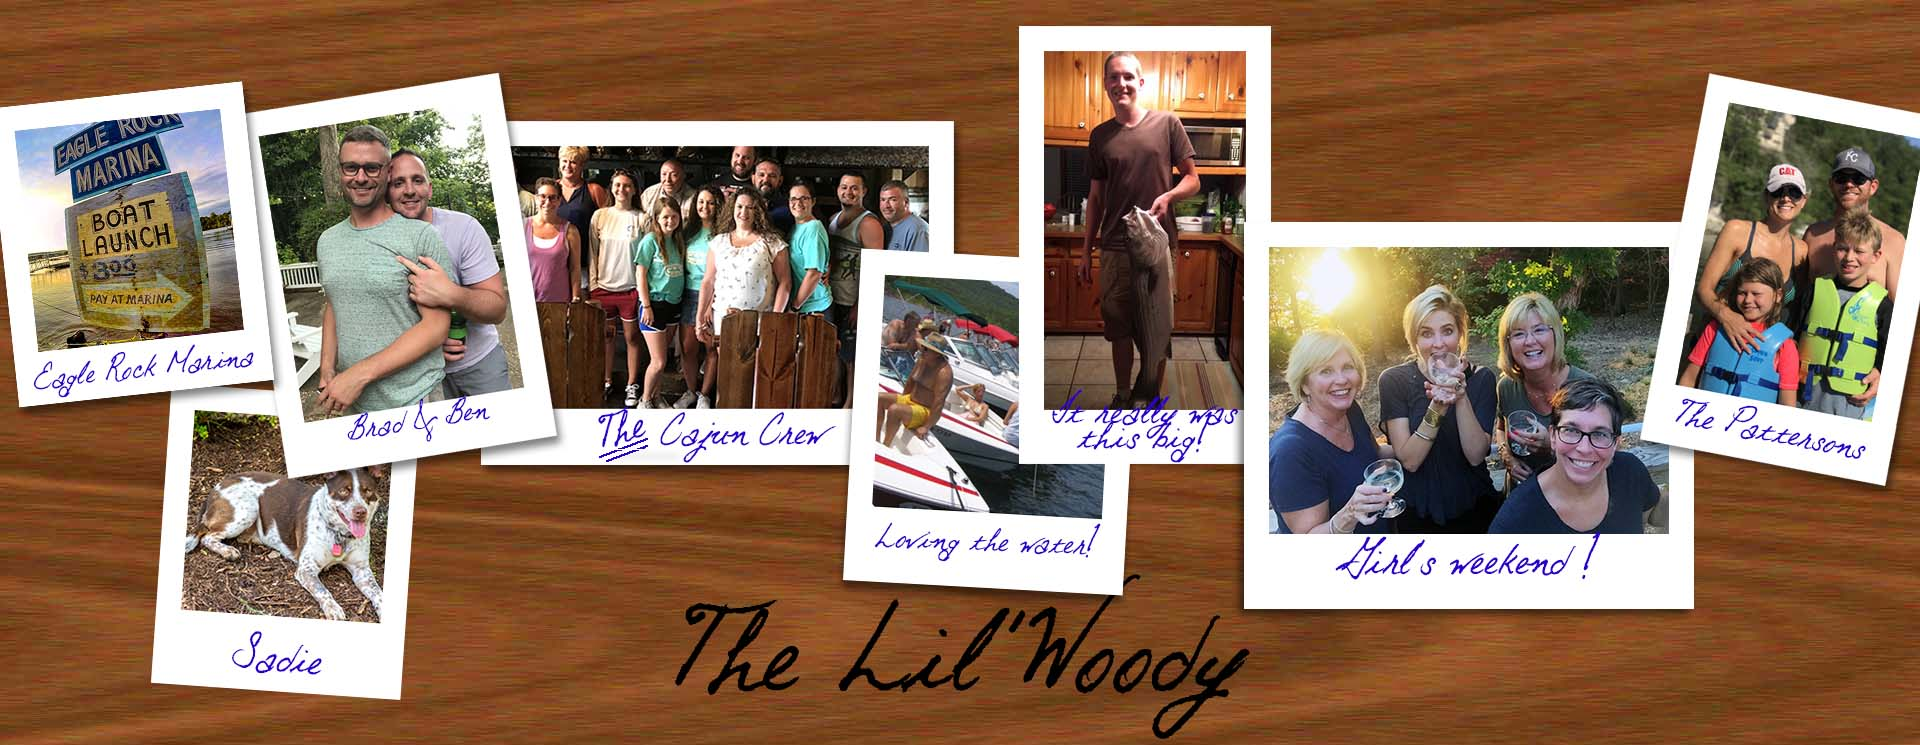 The Lil Woody photo gallery header image